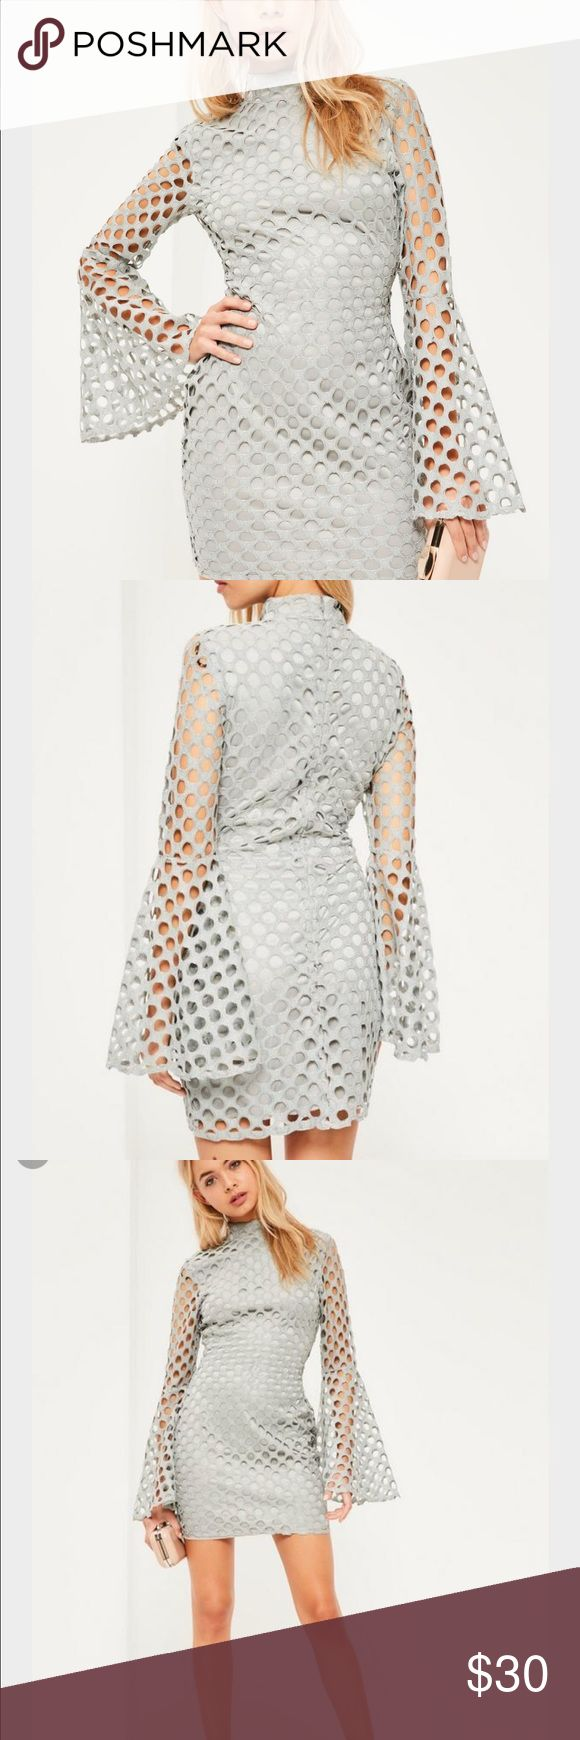 Brand New Missguided gray mini dress with Sleeves Gorgeous brand new grey flute sleeve circle lace high neck bodycon dress from Missguided.  US size 4 Missguided Dresses Mini